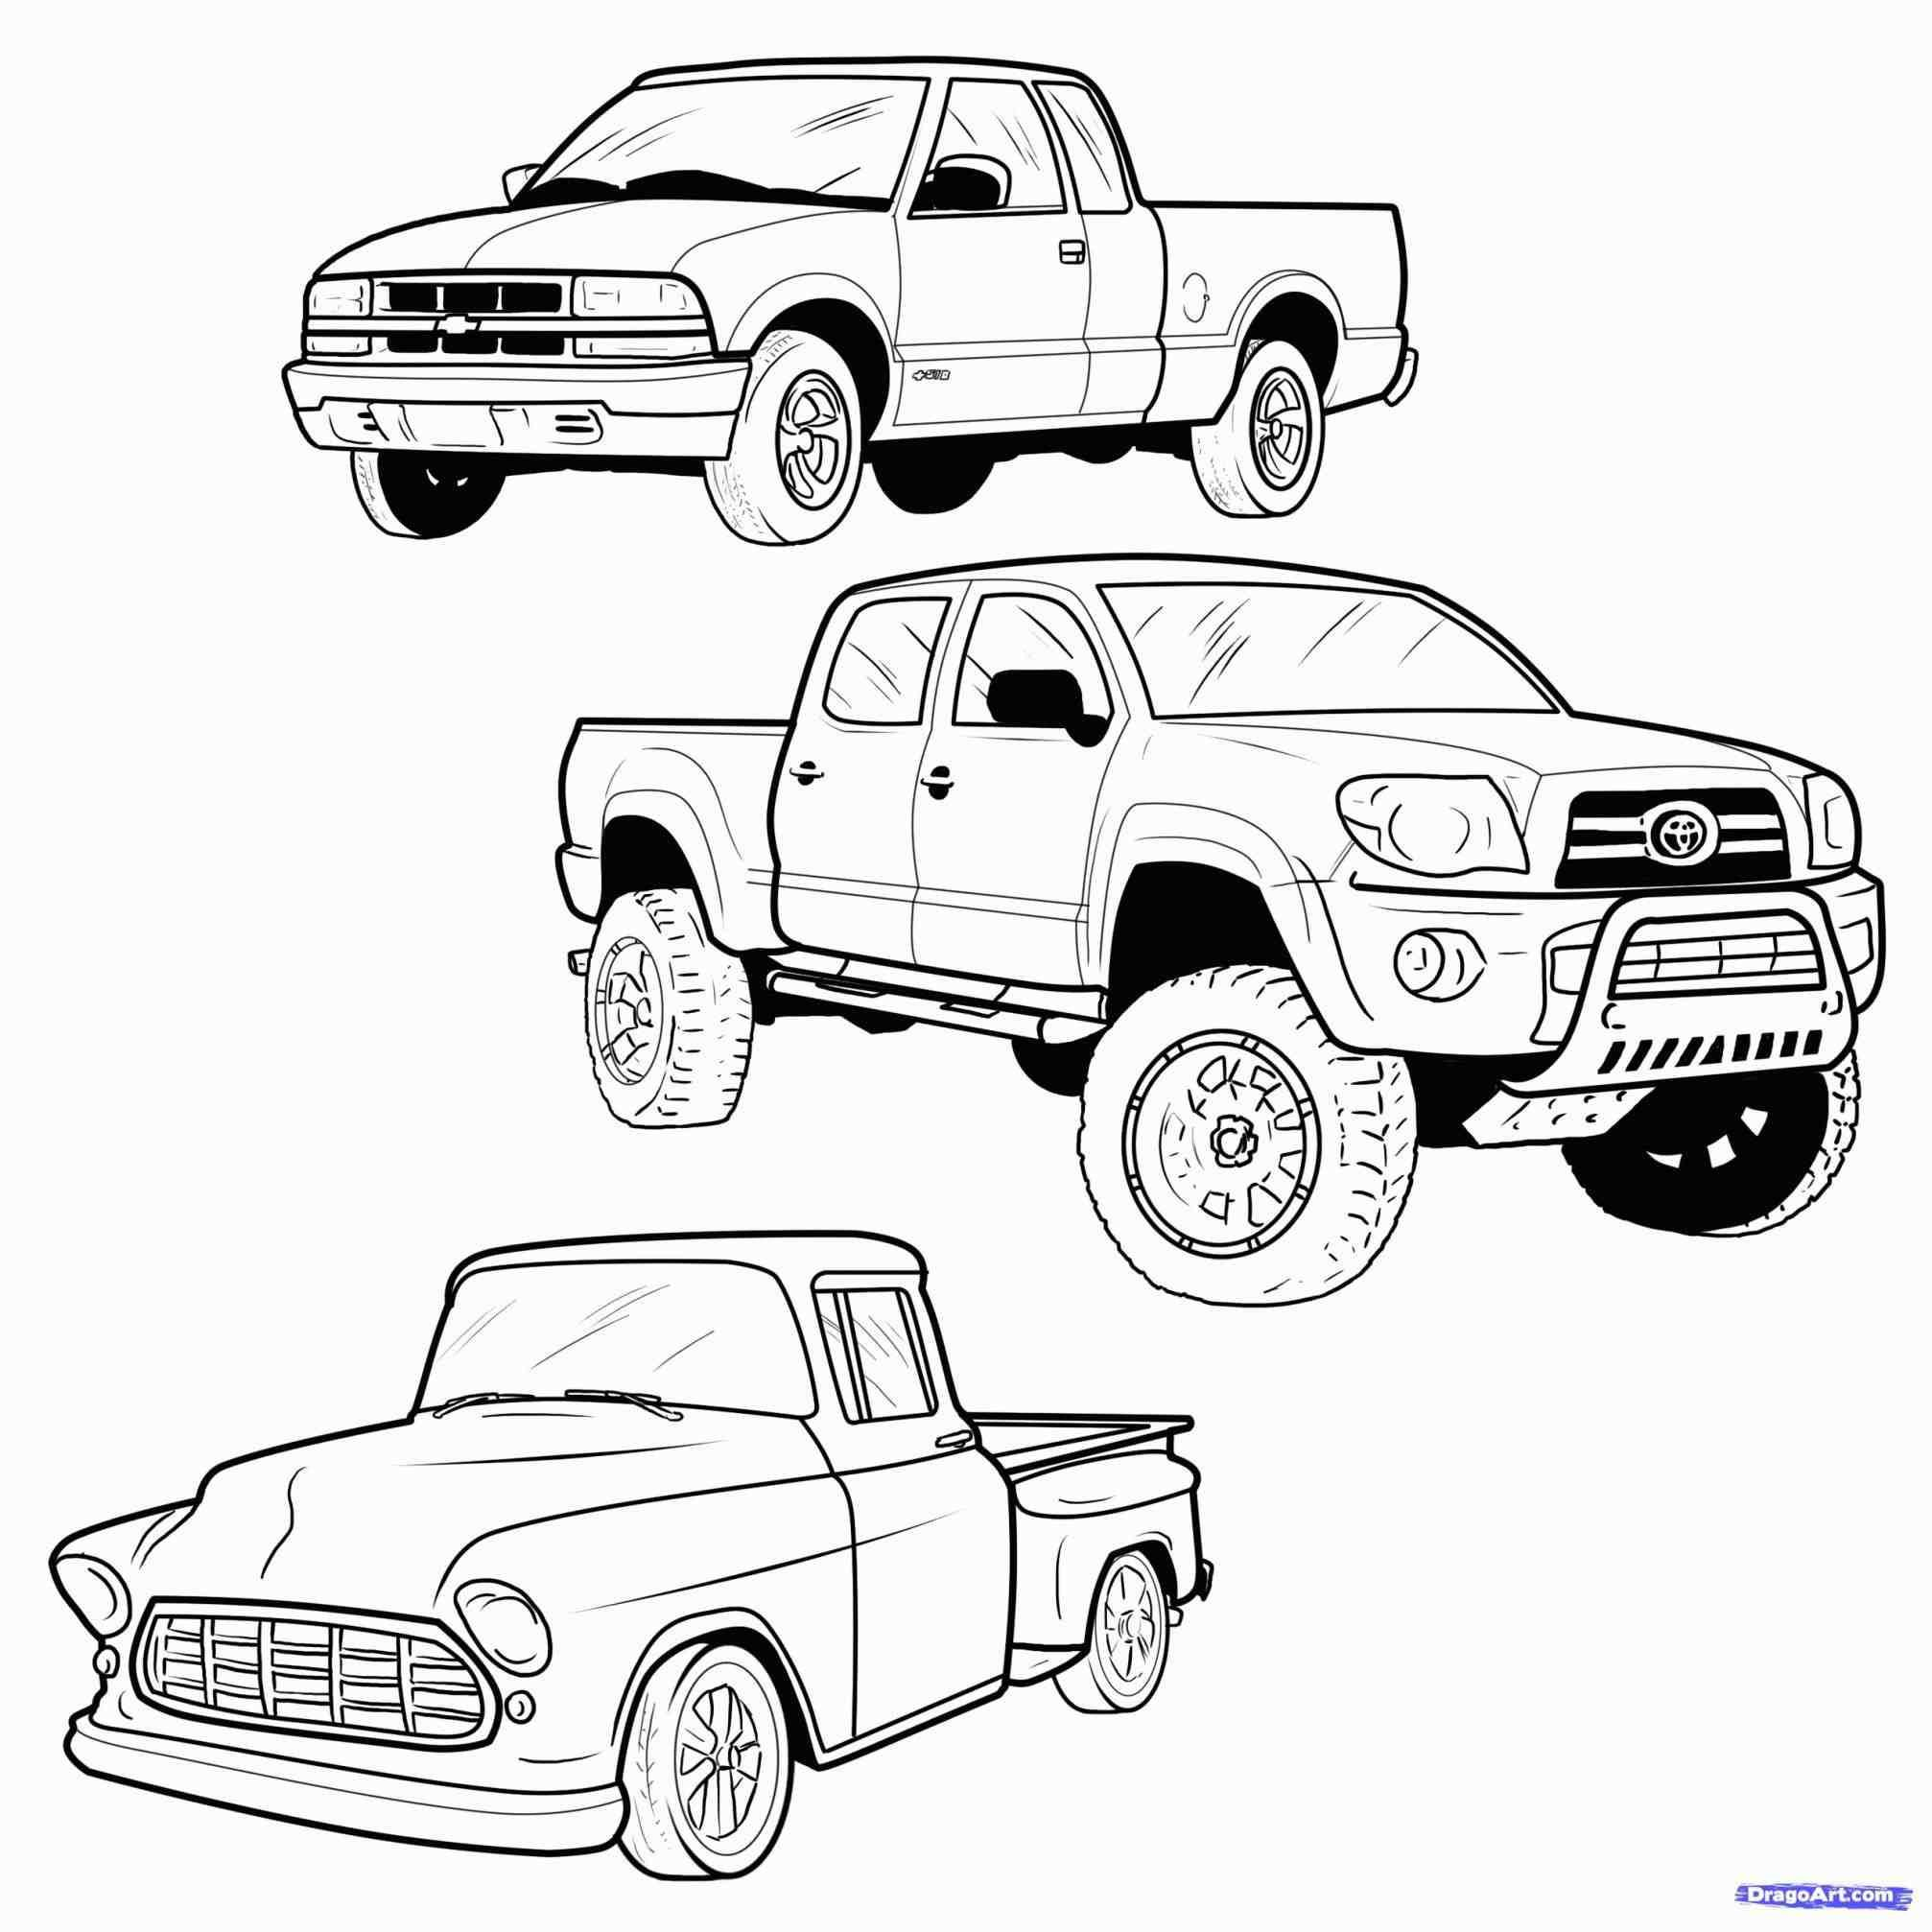 Range Rover Coloring Pages At Getcolorings